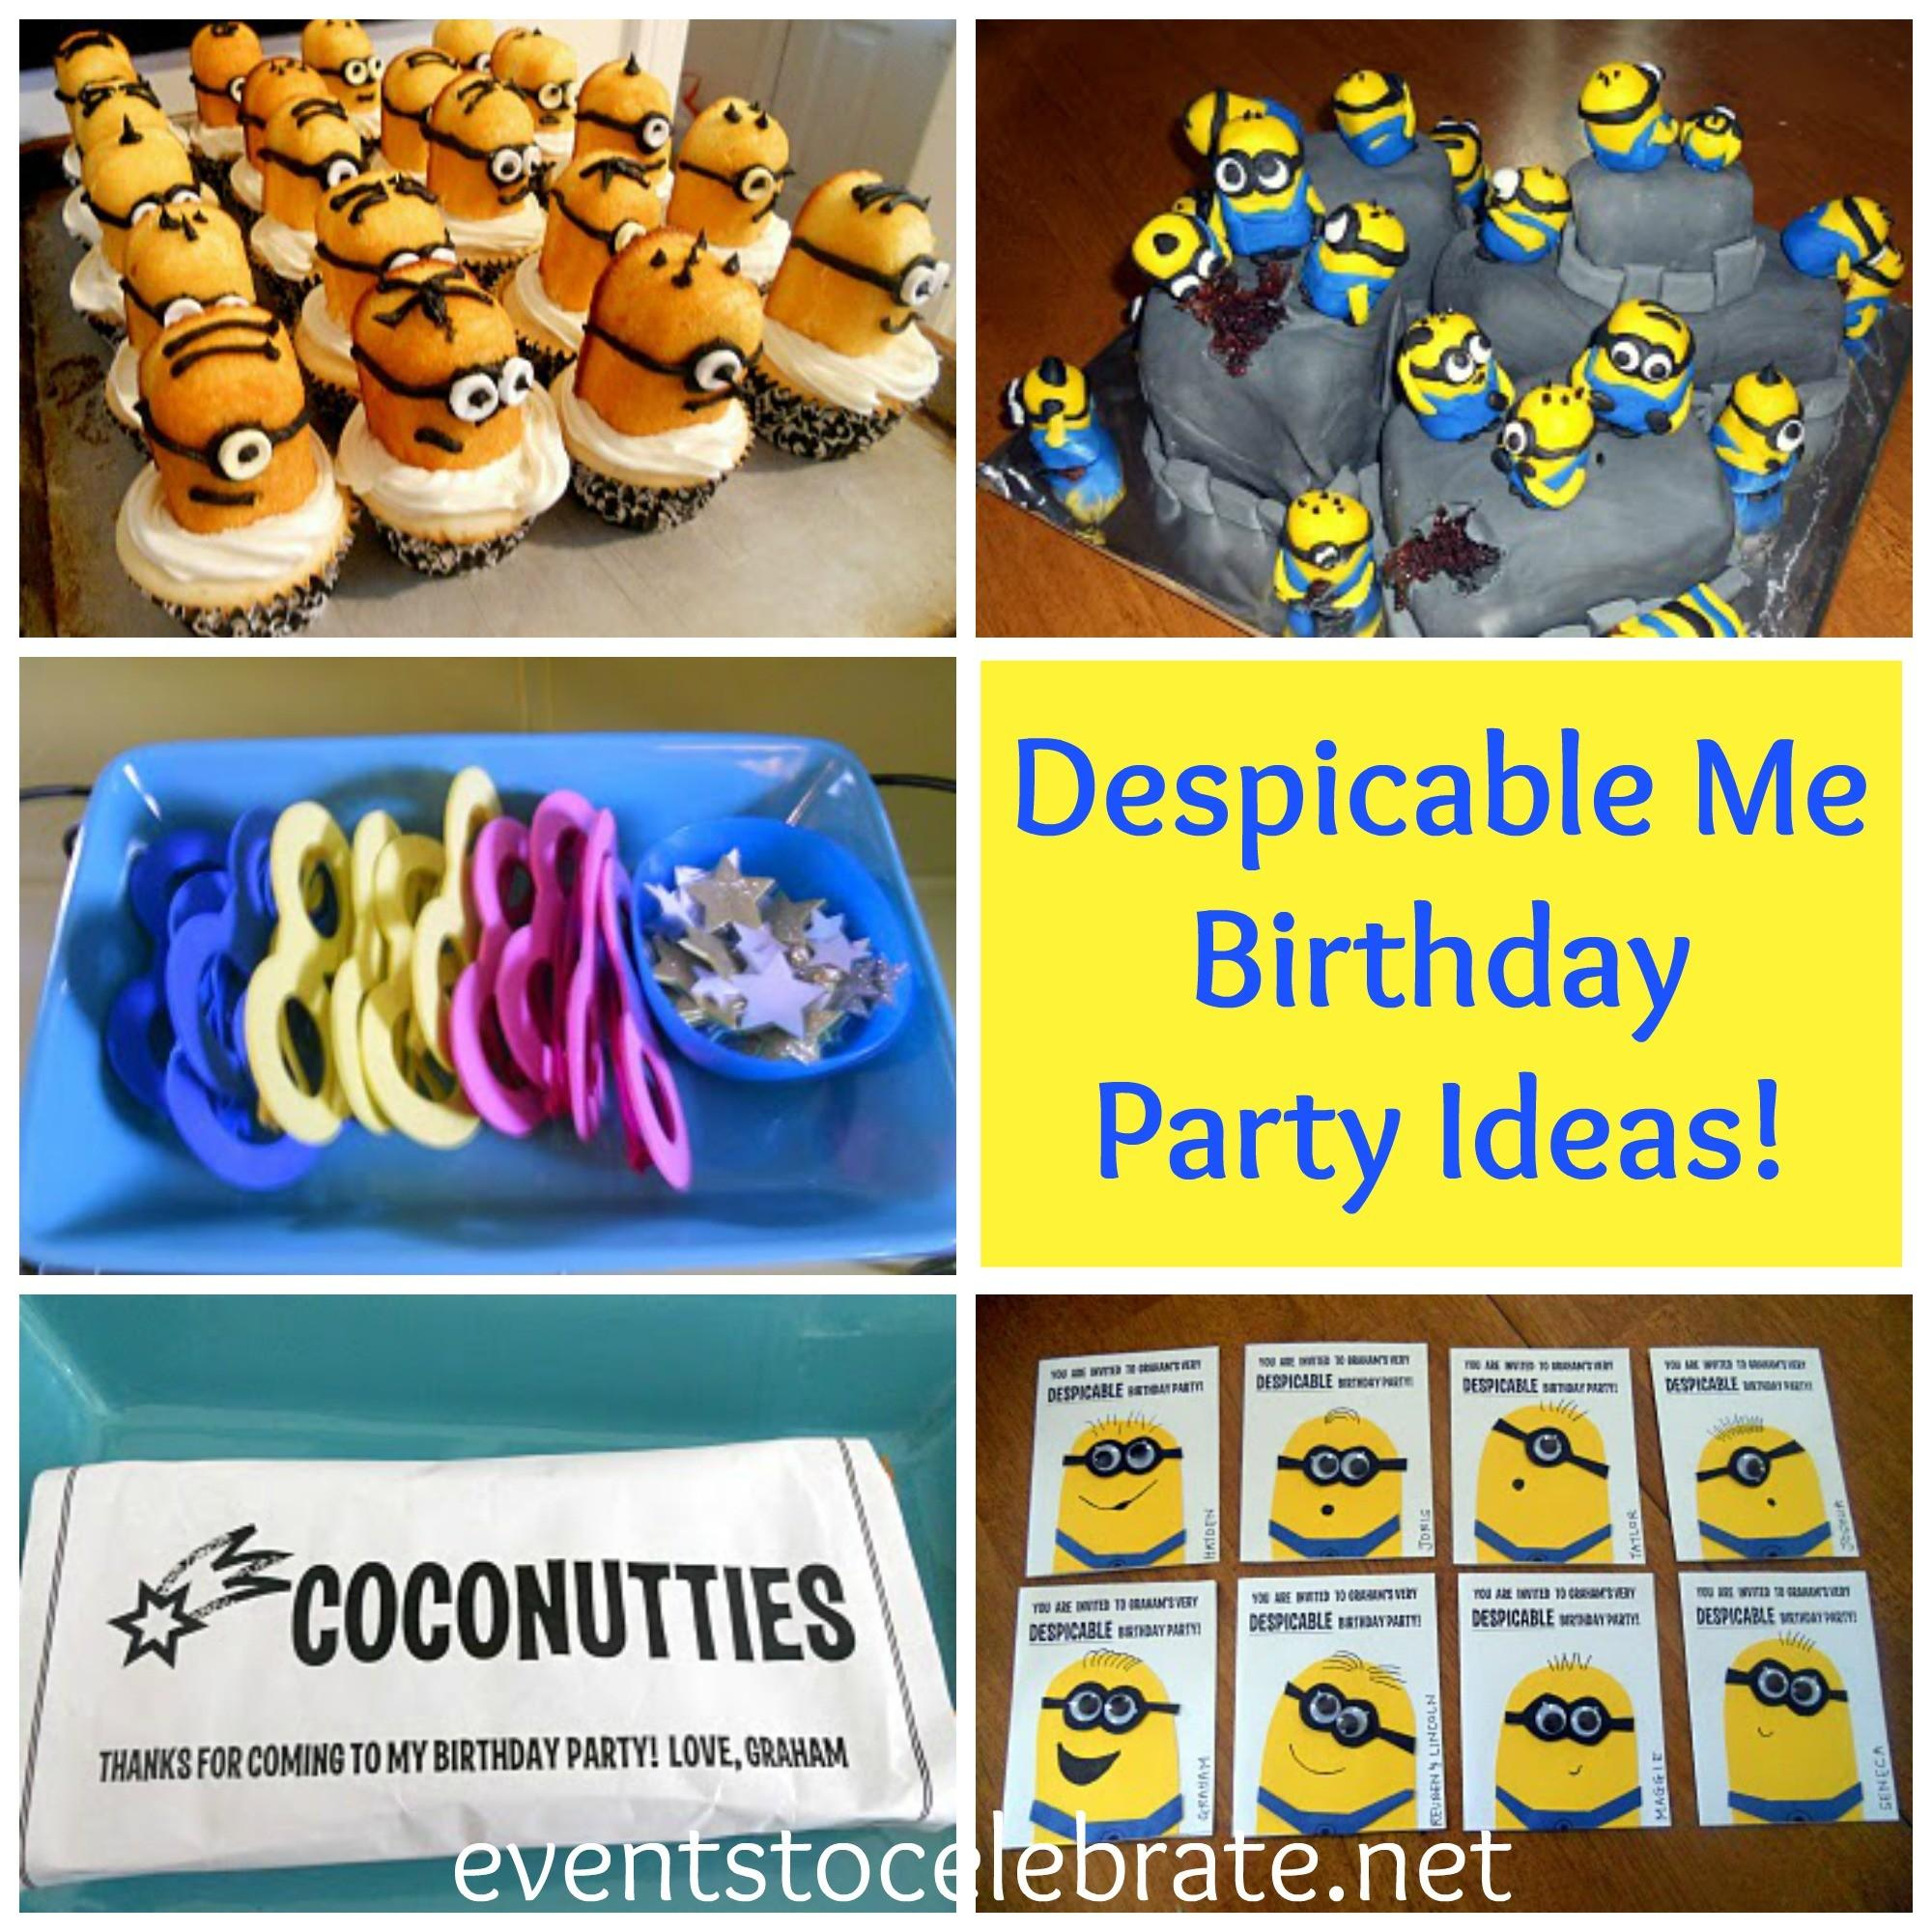 Despicable Birthday Party Events Celebrate